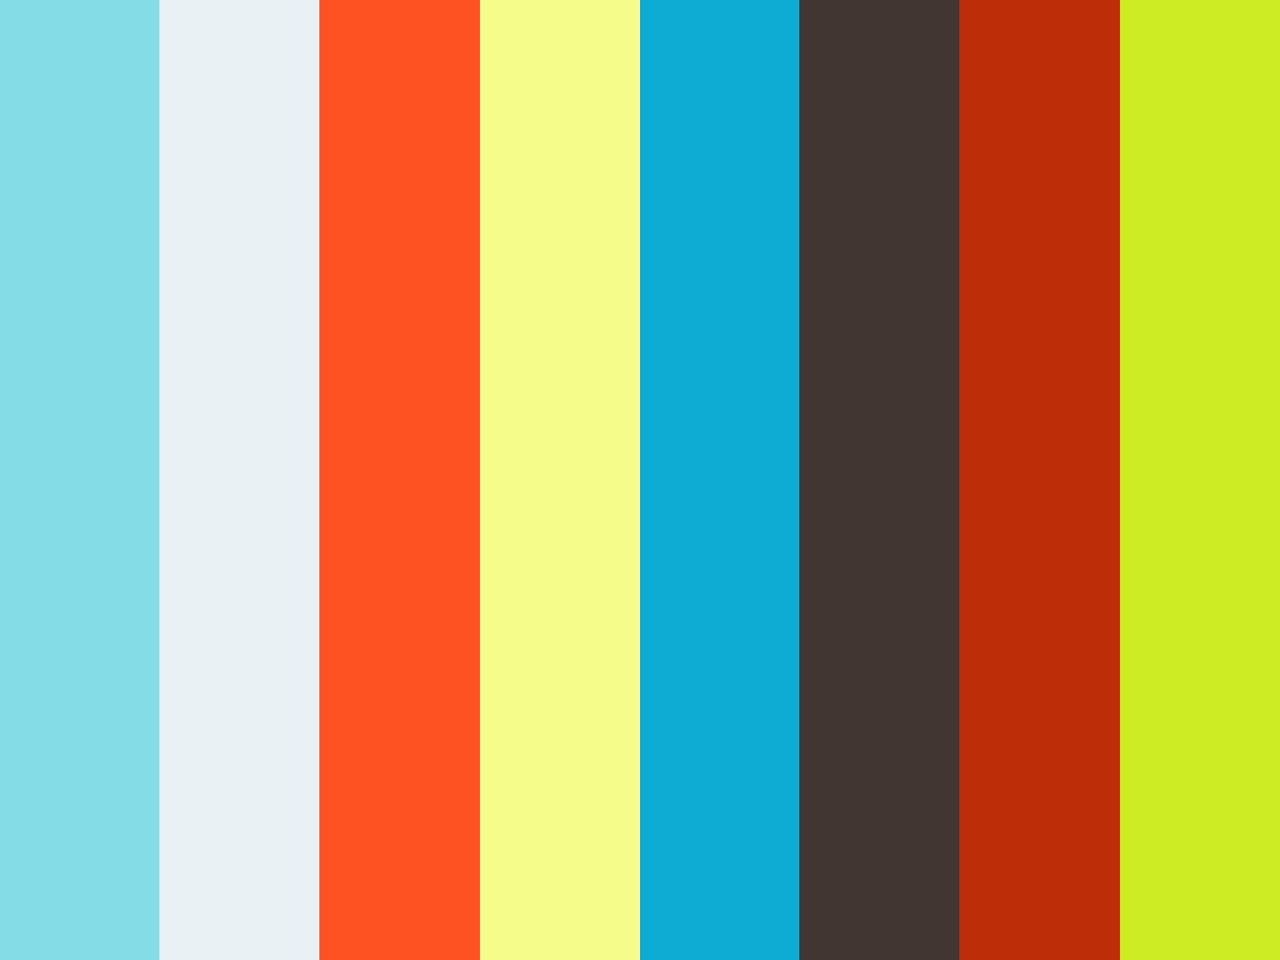 Search for porn through bank account authoritative answer